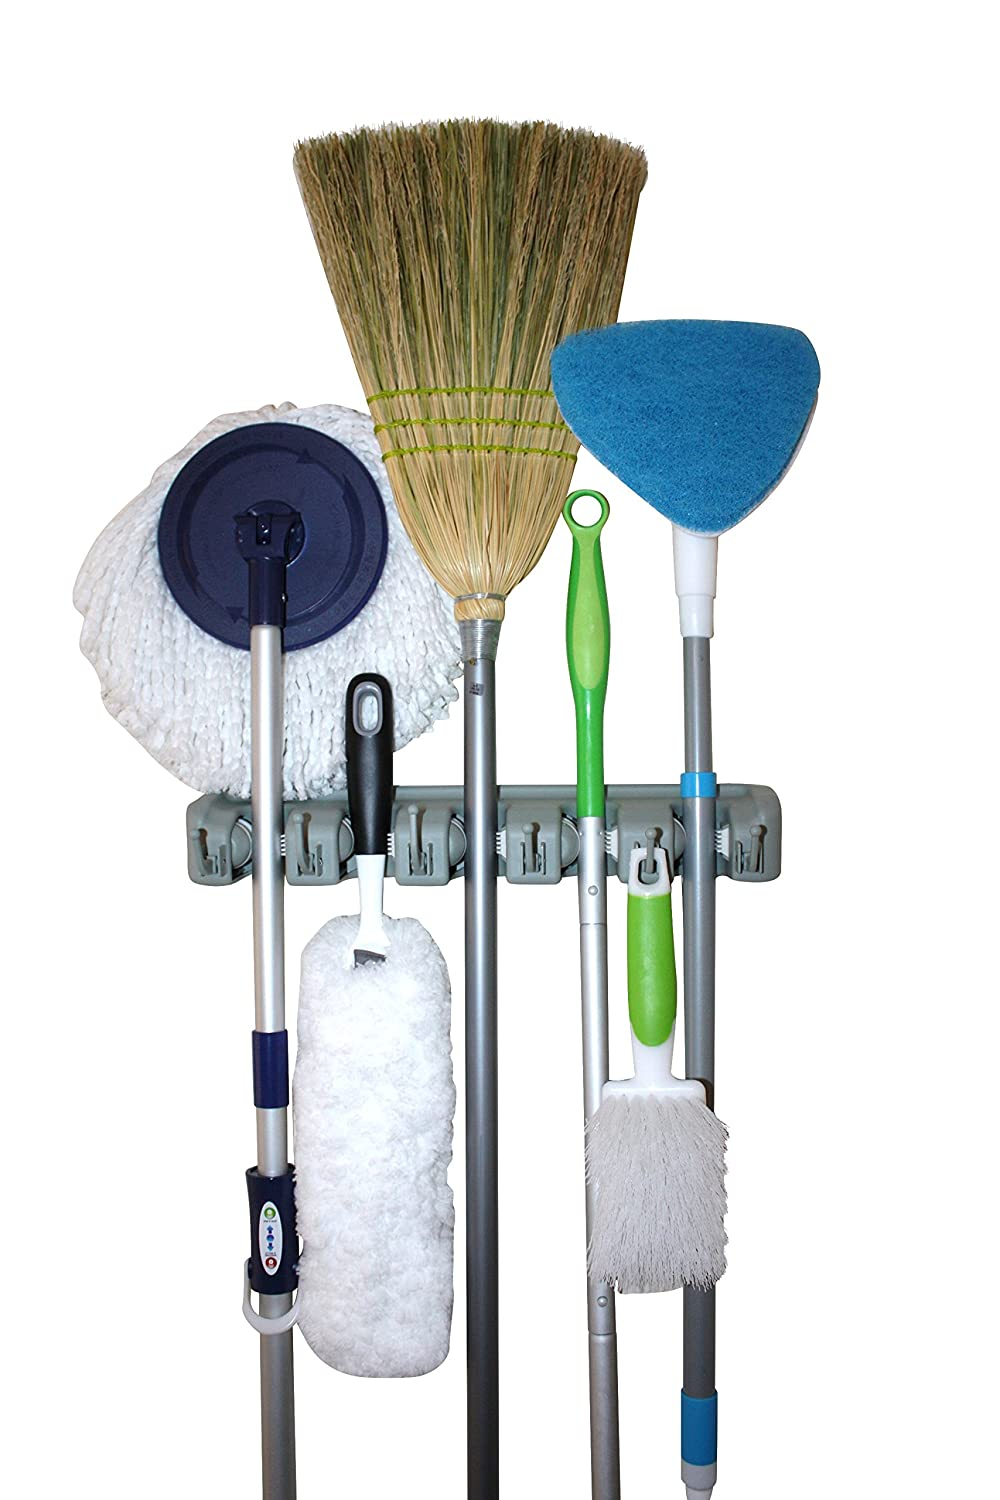 Twist and shout mop review - Amazon Com Twist And Shout Mop And Tool Organizer With 5 Slots And 6 Hooks Superior Dual Track White Rubber For Better Grips Home Kitchen